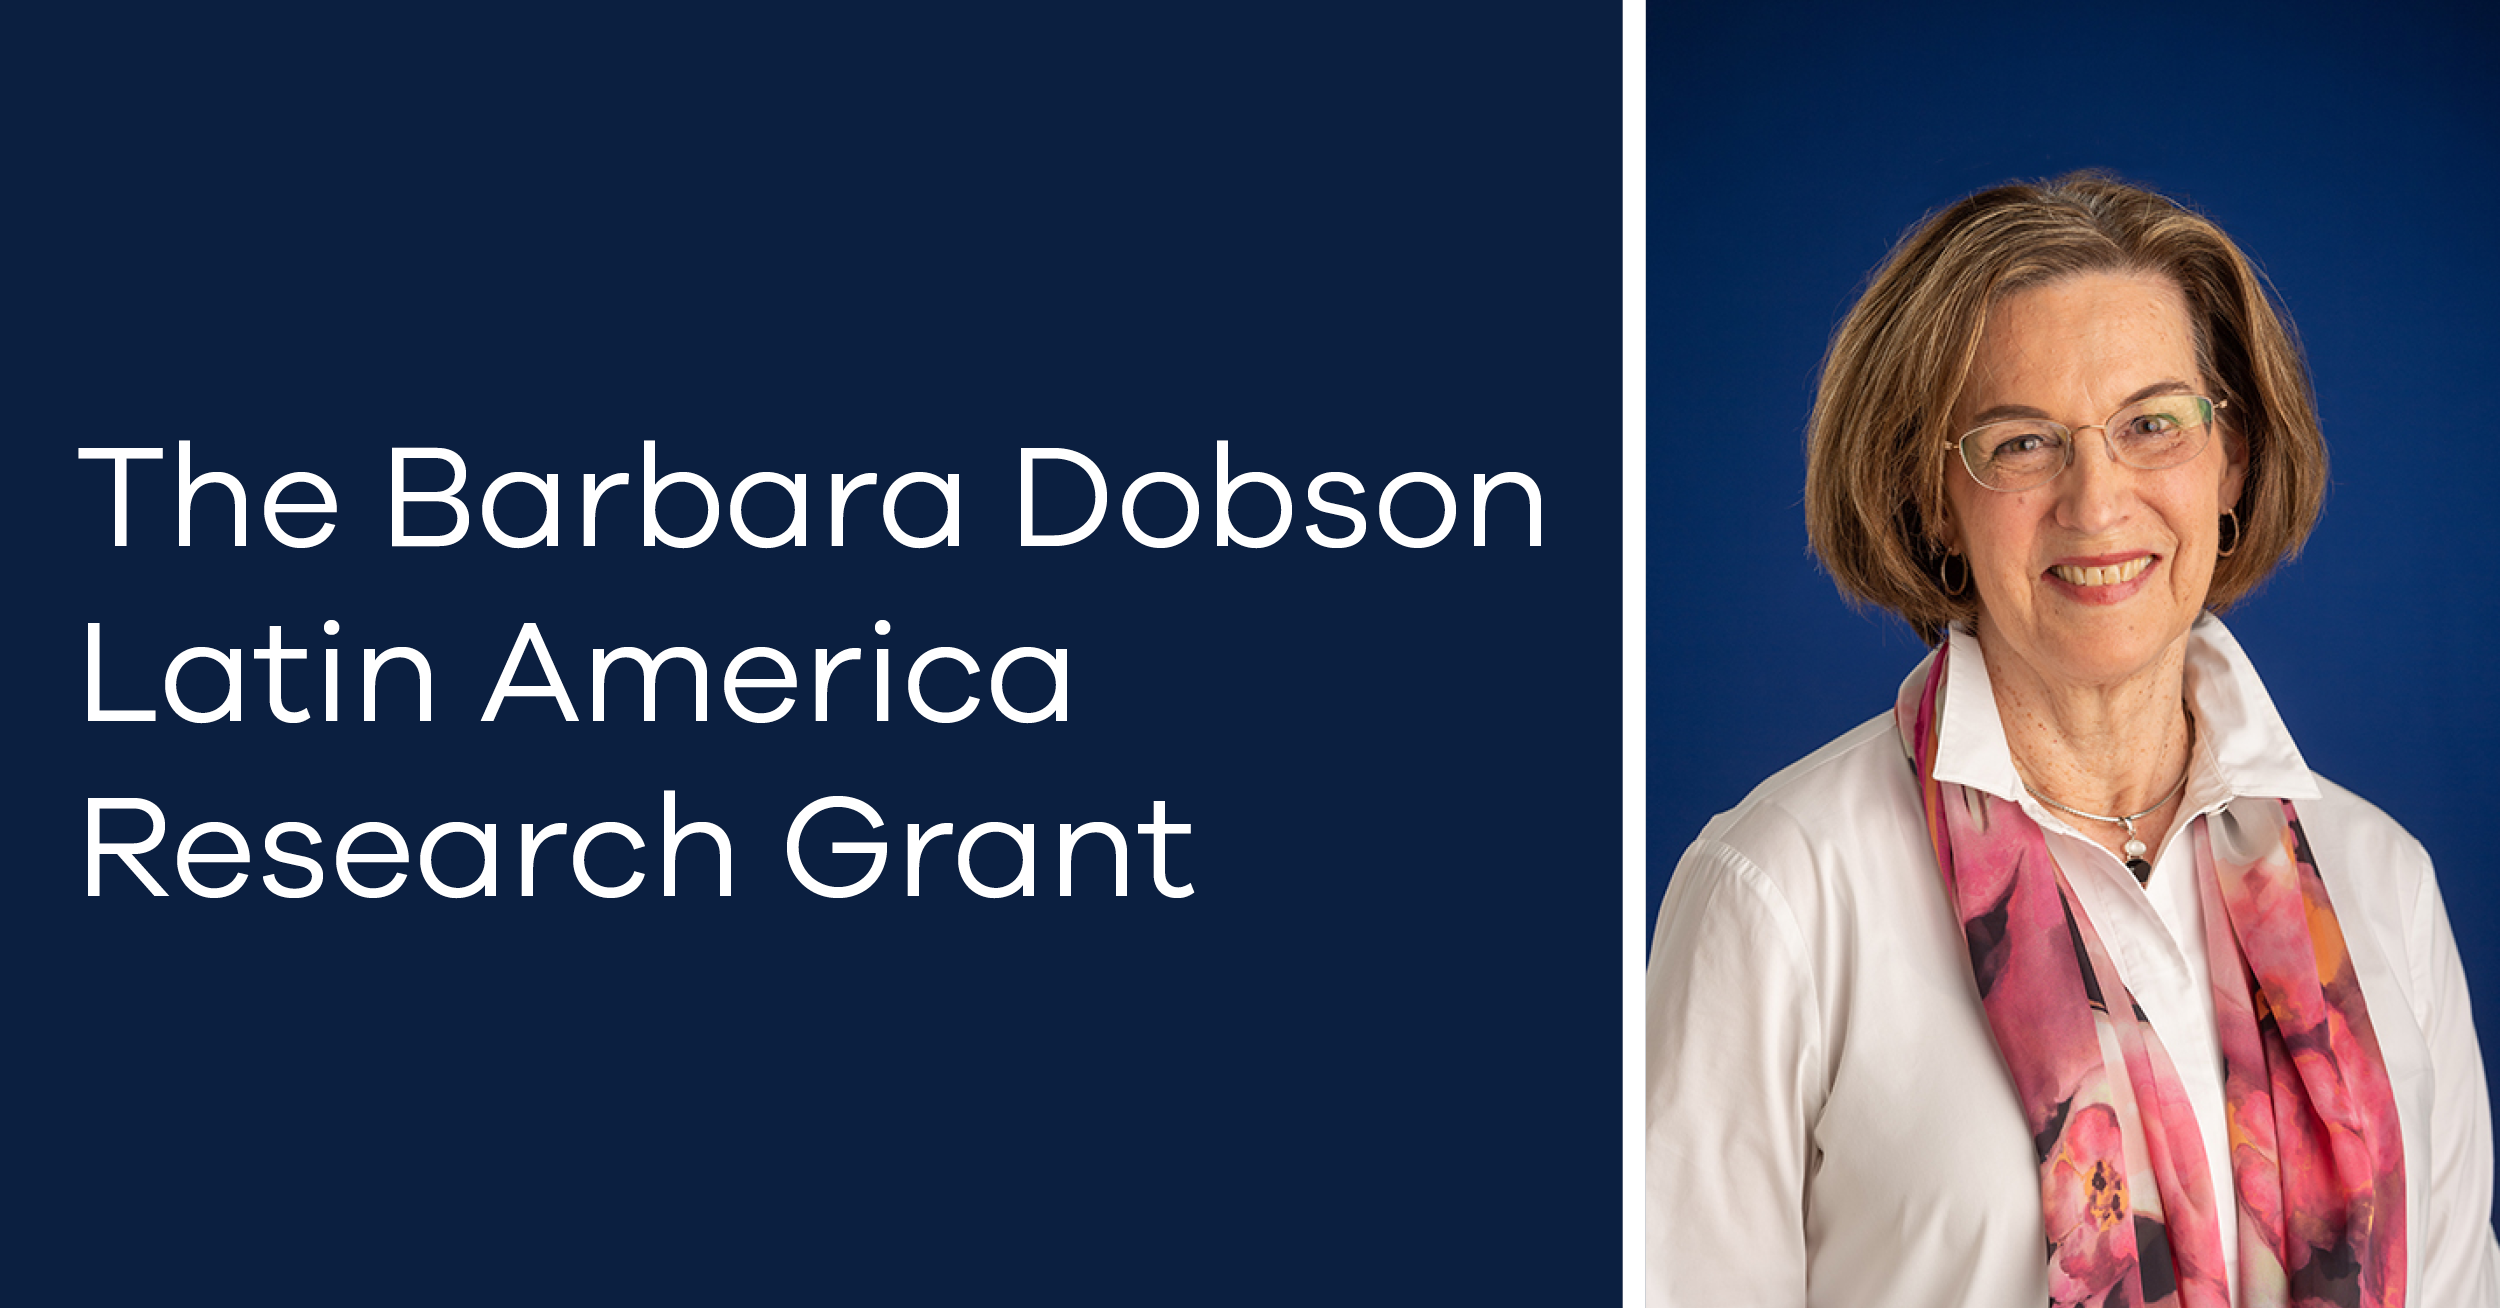 The Barbara Dobson Latin America Research Grant